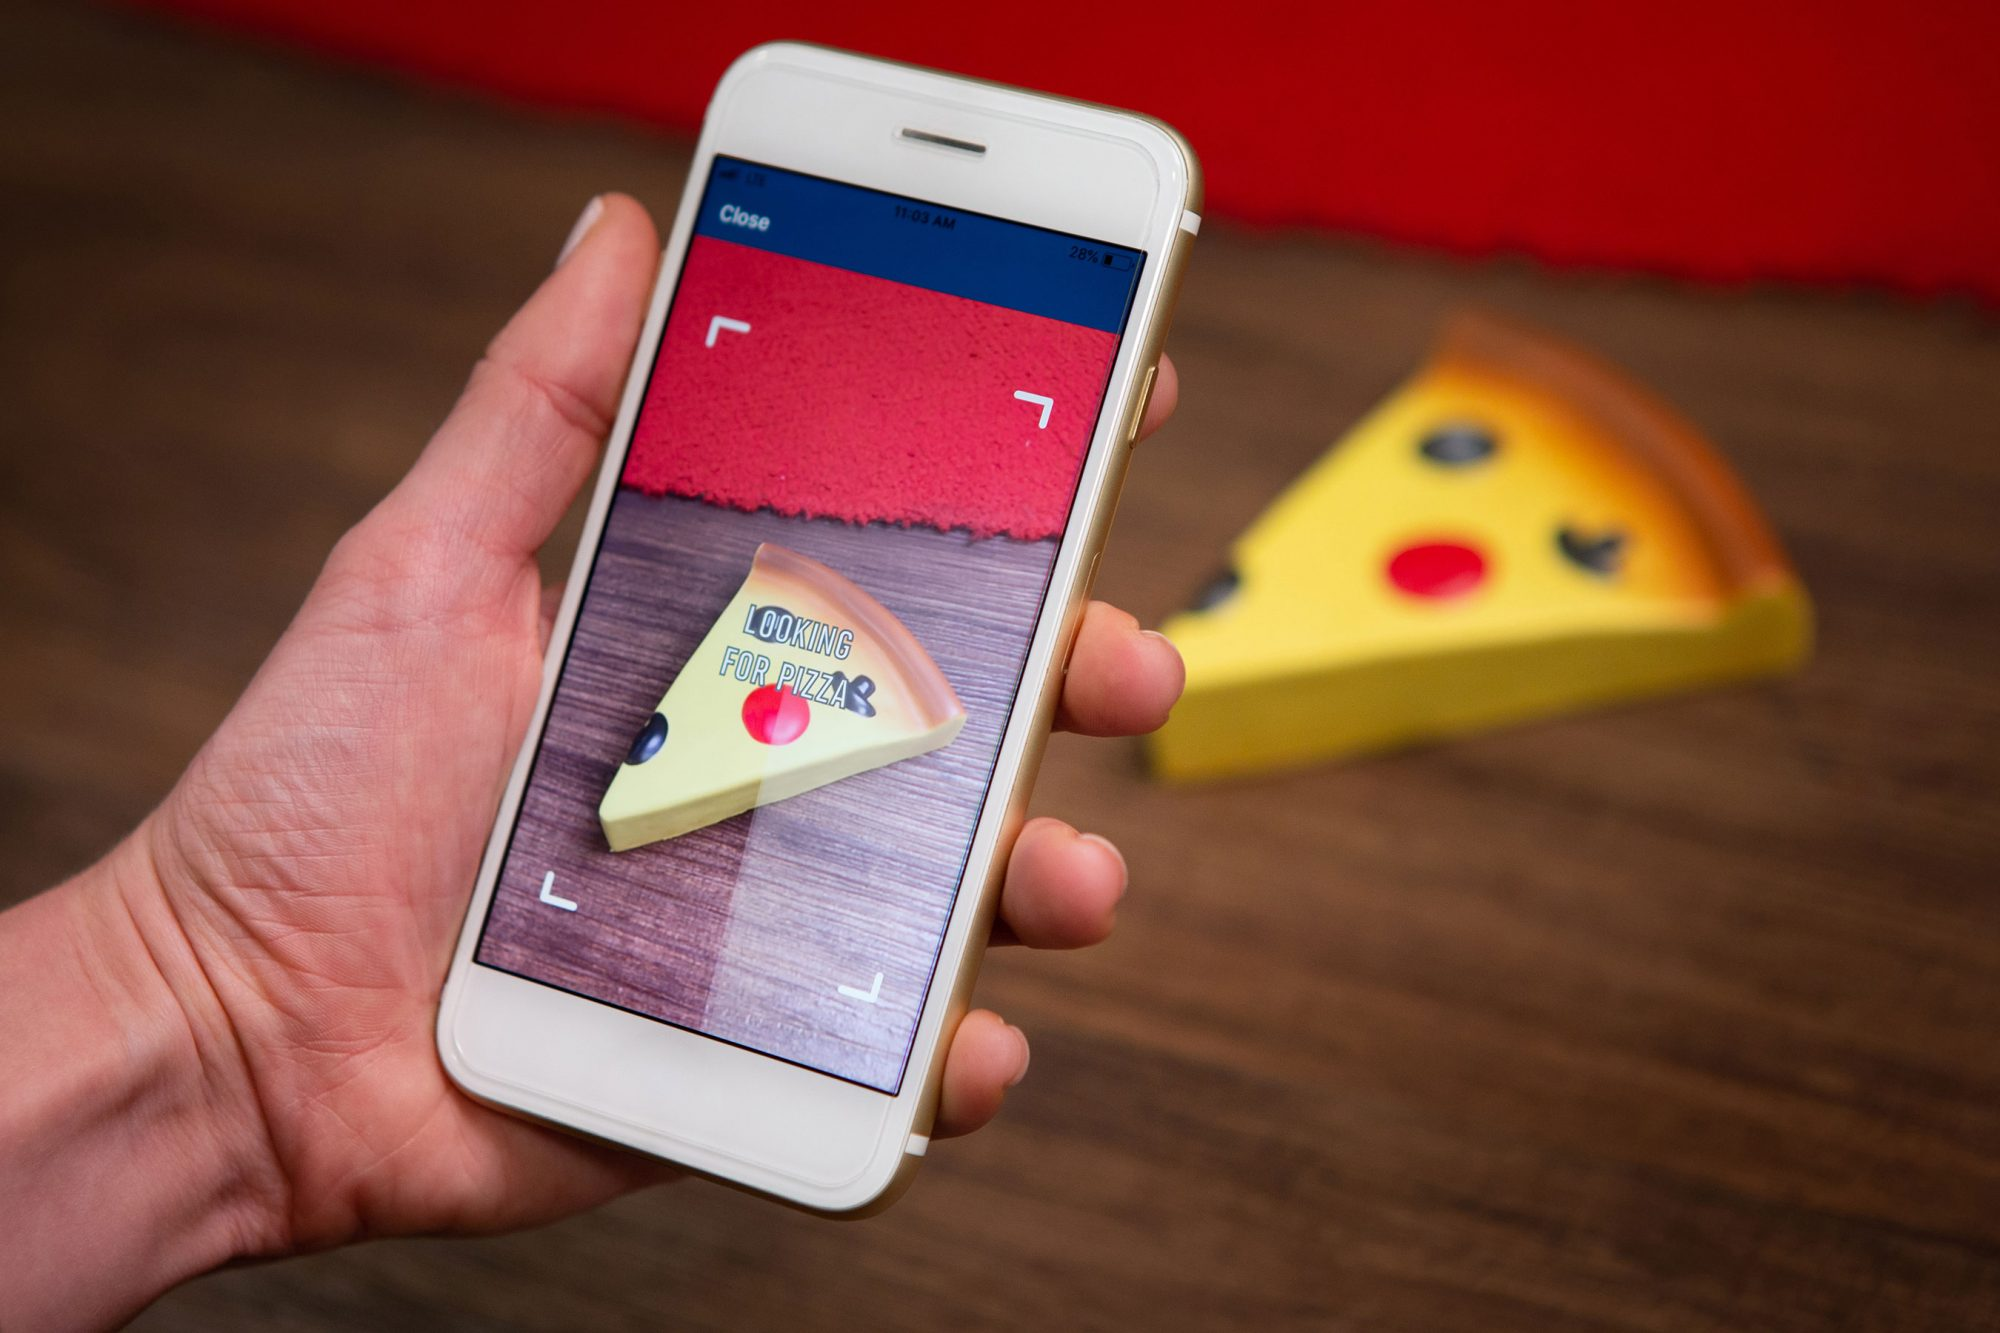 Domino's Points for Pies PromoCR: Domino's